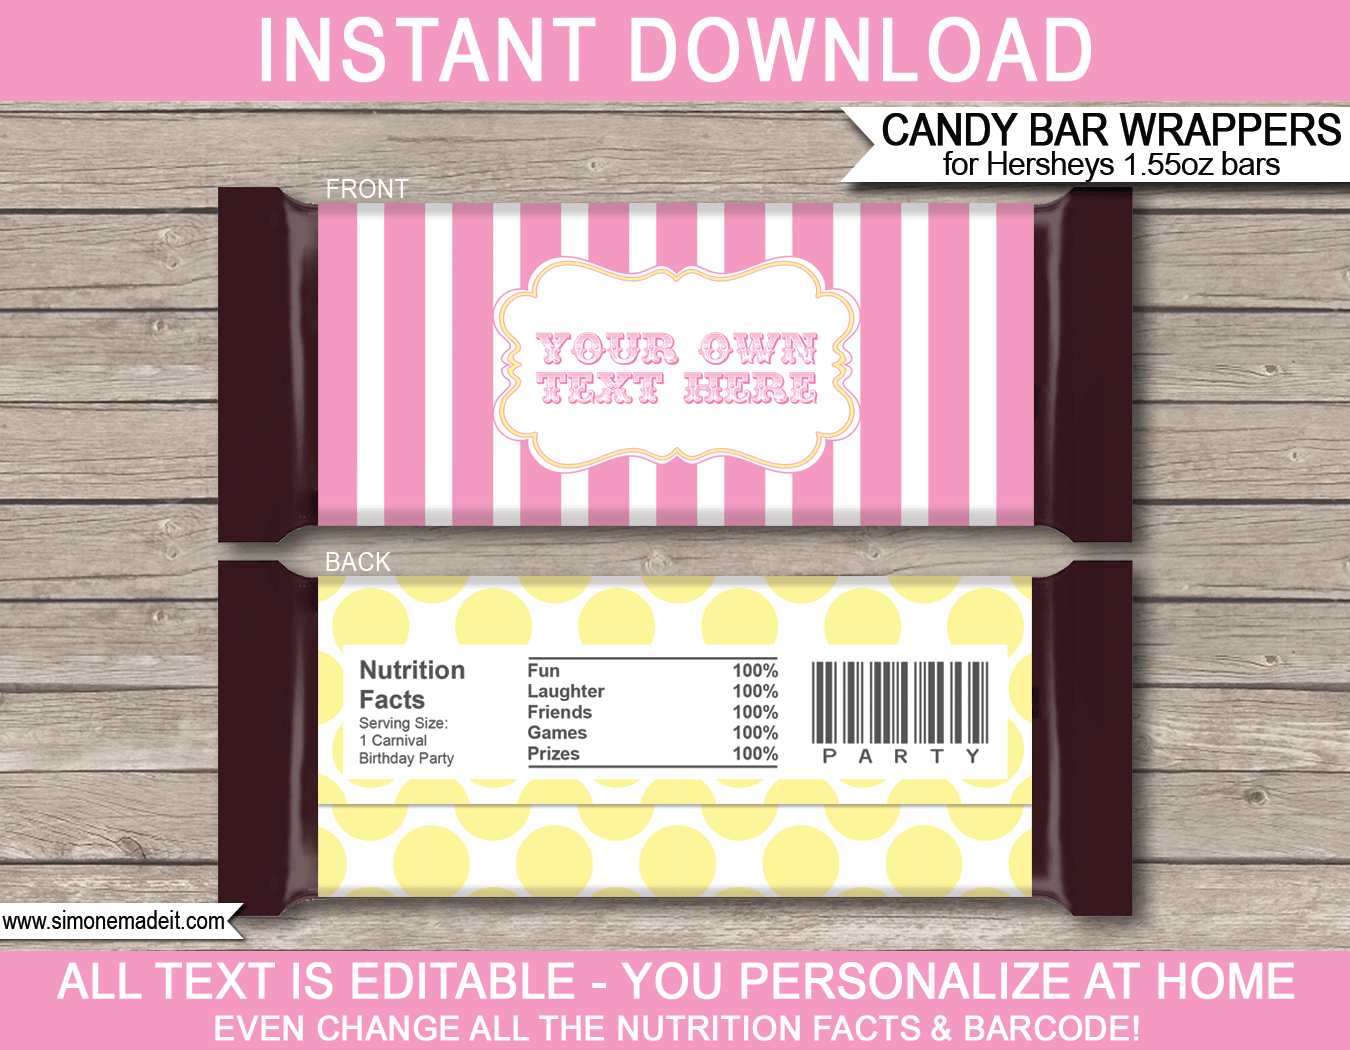 Yellow Carnival Hershey Candy Bar Wrappers | Circus | Pink Yellow | Birthday Party Favors | Personalized Candy Bars | Editable Template | INSTANT DOWNLOAD $3.00 via simonemadeit.com